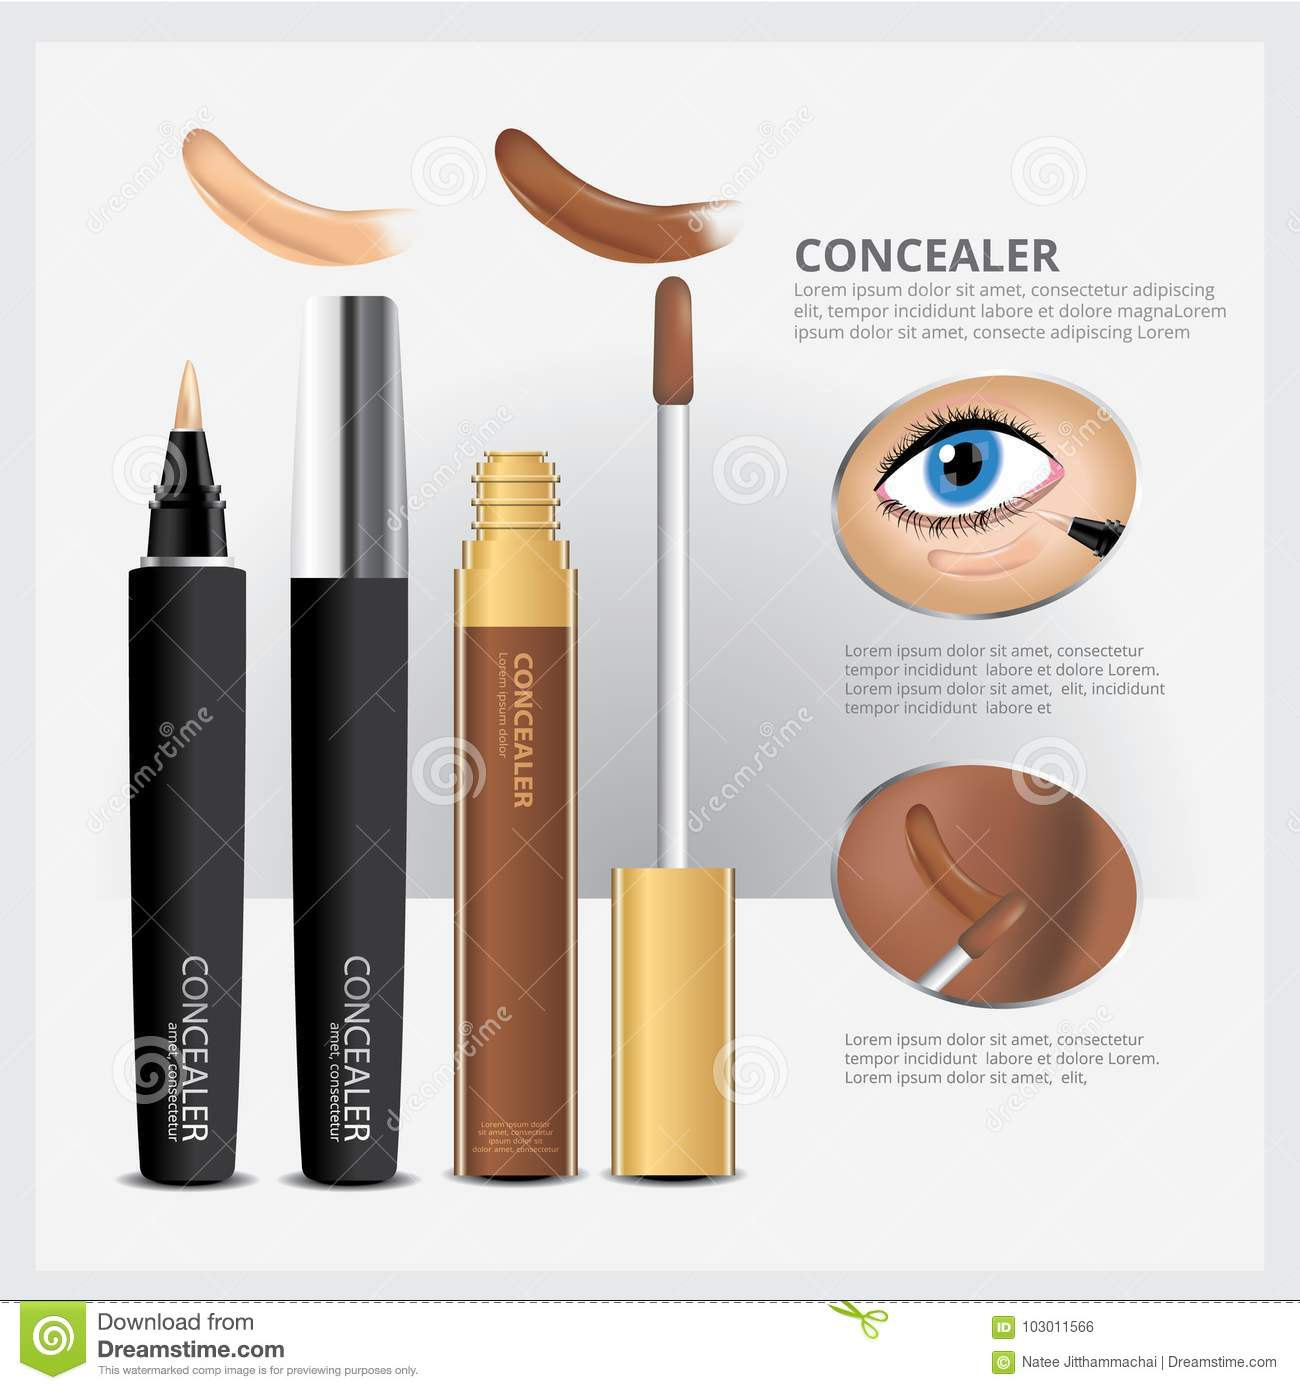 Concealer Cosmetic Package with Face Makeup